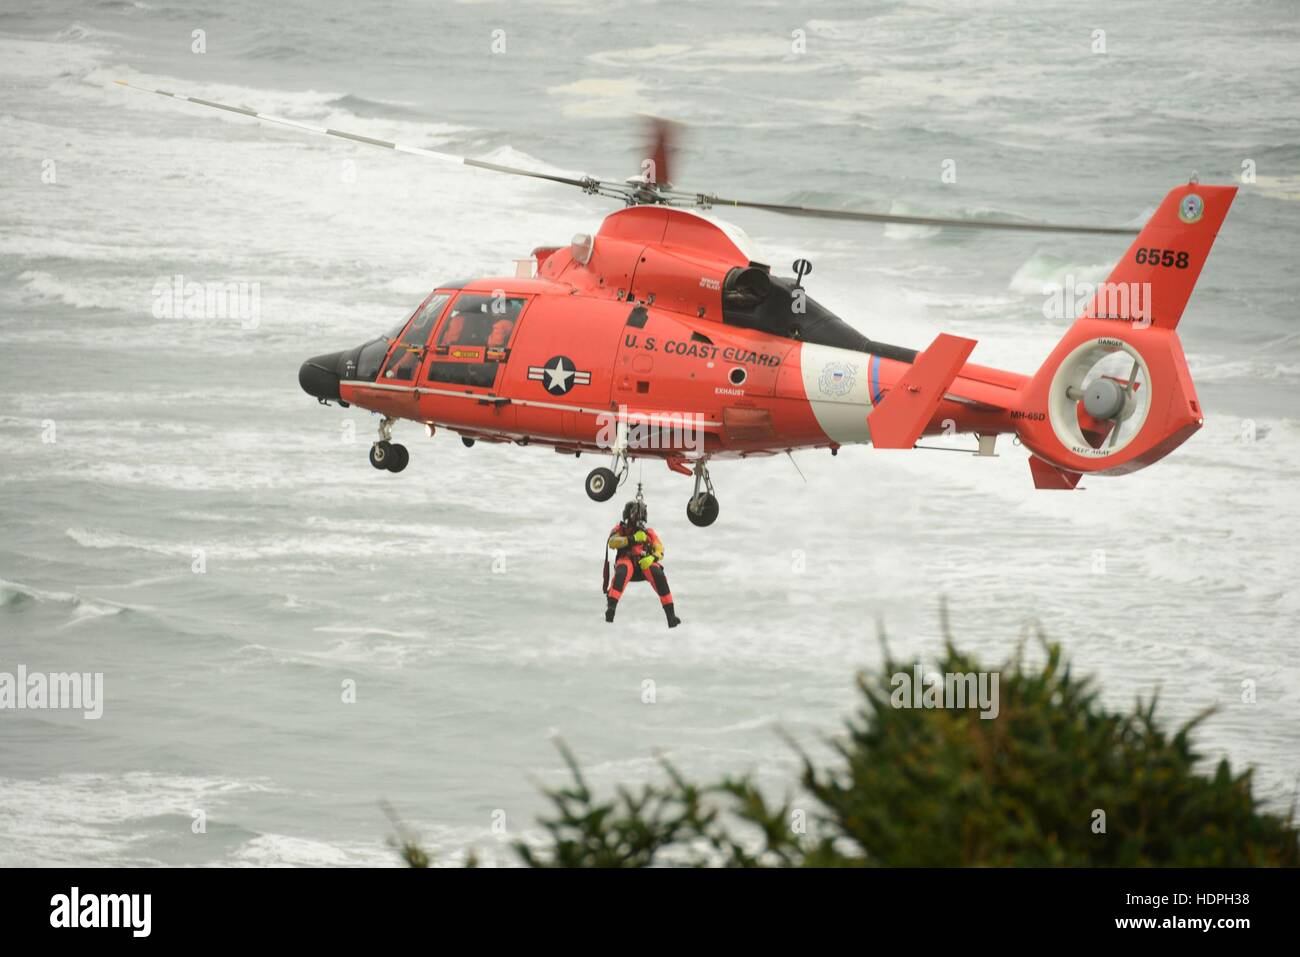 A U.S. Coast Guard pararescue officer is lowered from a Eurocopter MH-65 Dolphin search and rescue helicopter during - Stock Image